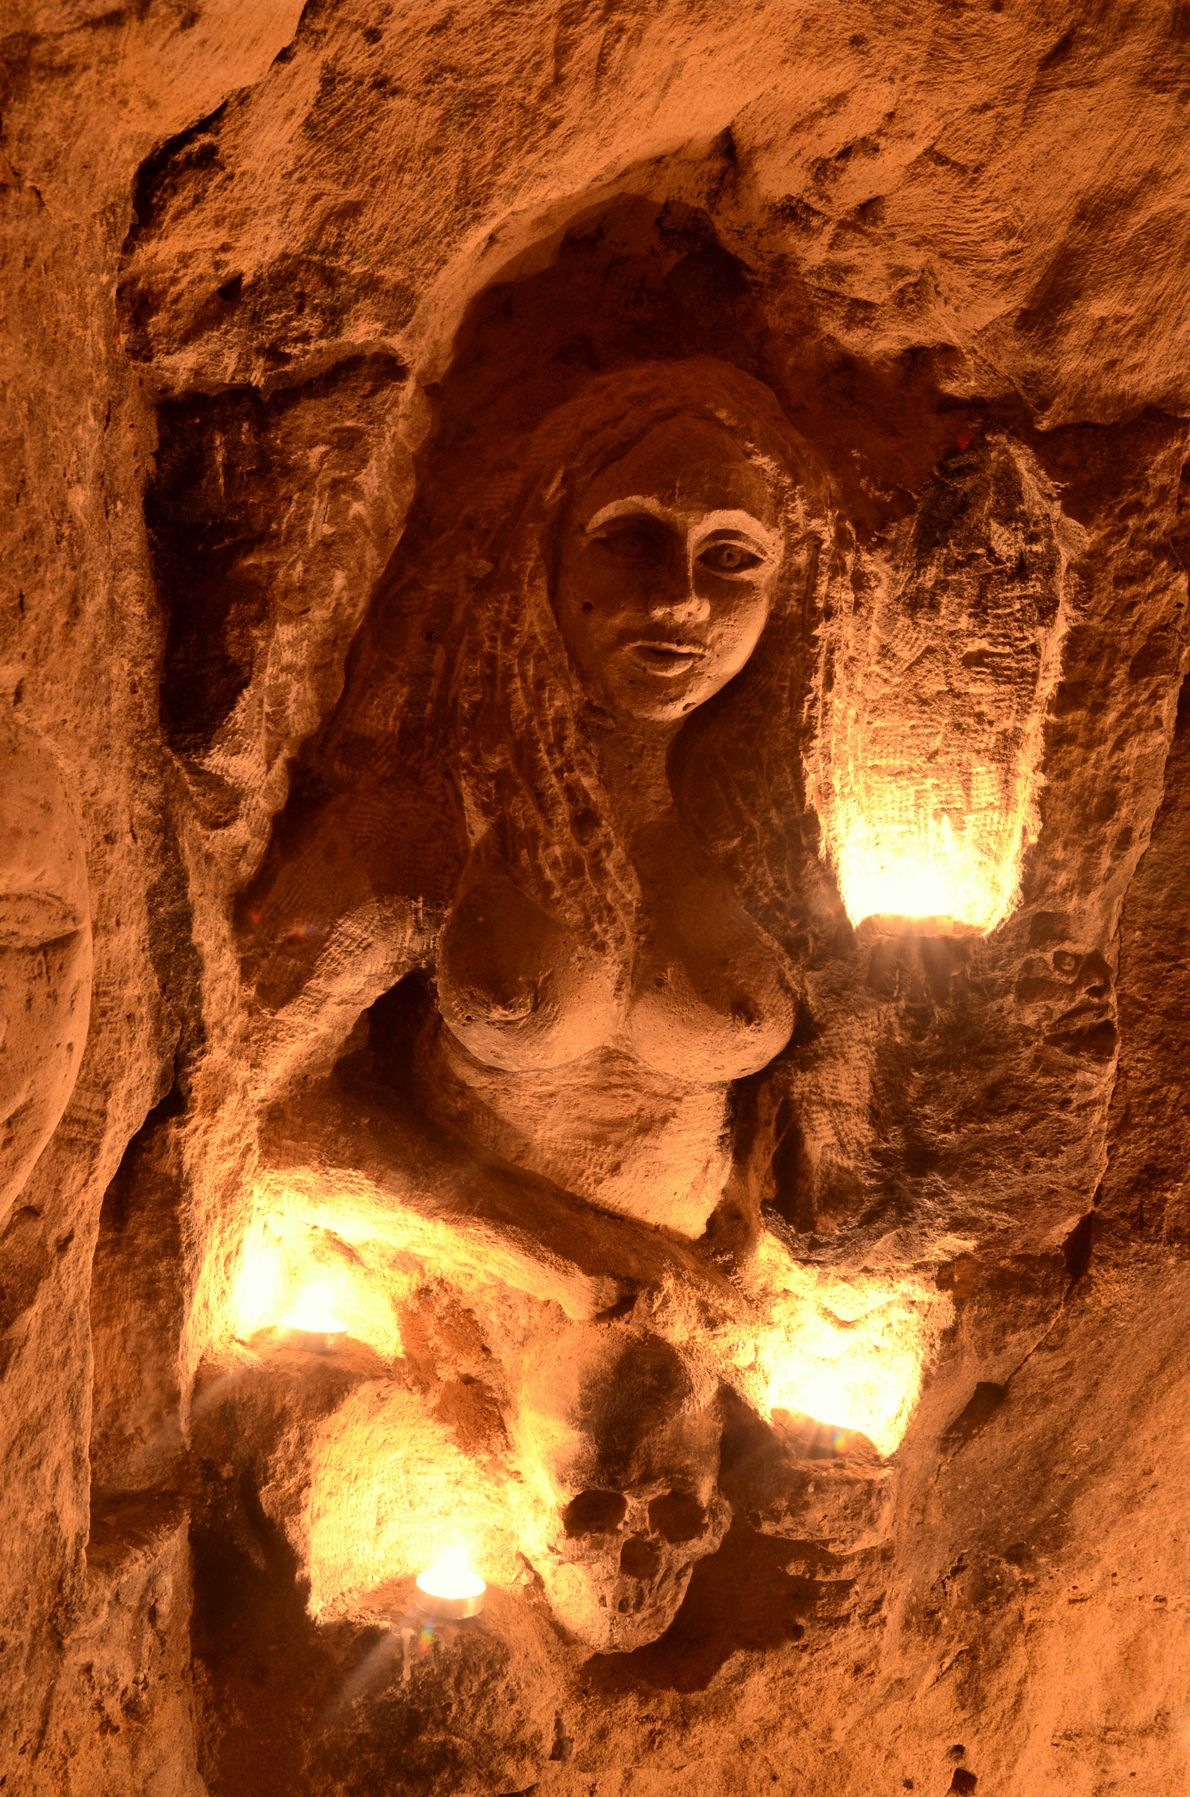 There are many sculptures in the catacomb system, where the soft limestone has been carved into …